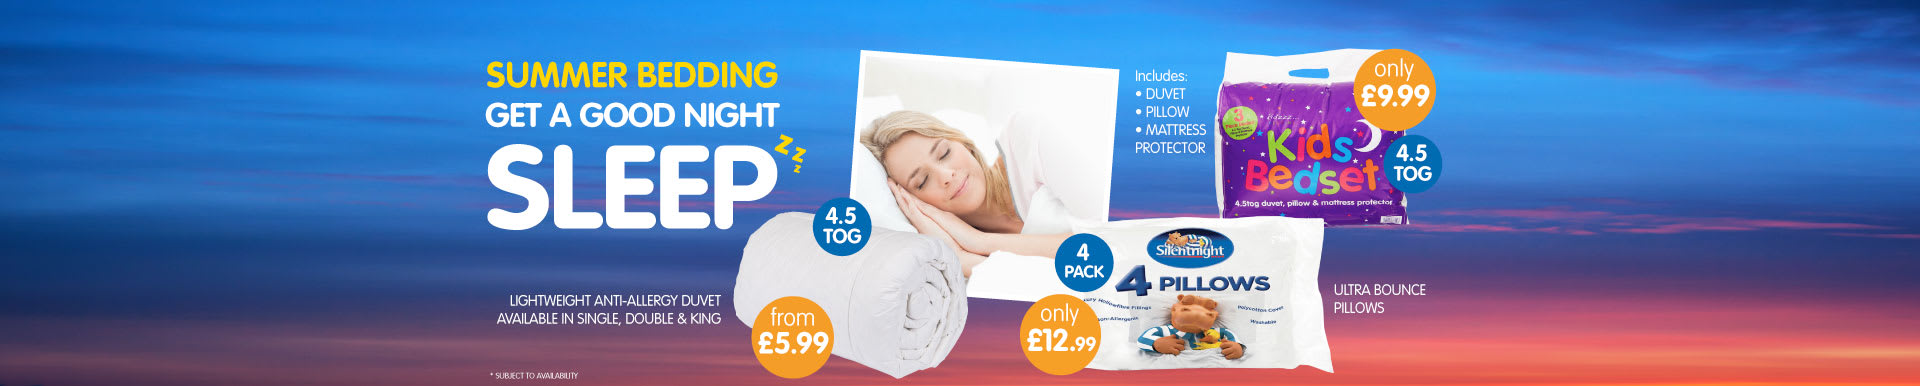 Big savings on lightweight summer duvets and ultra bounce pillows at B&M.